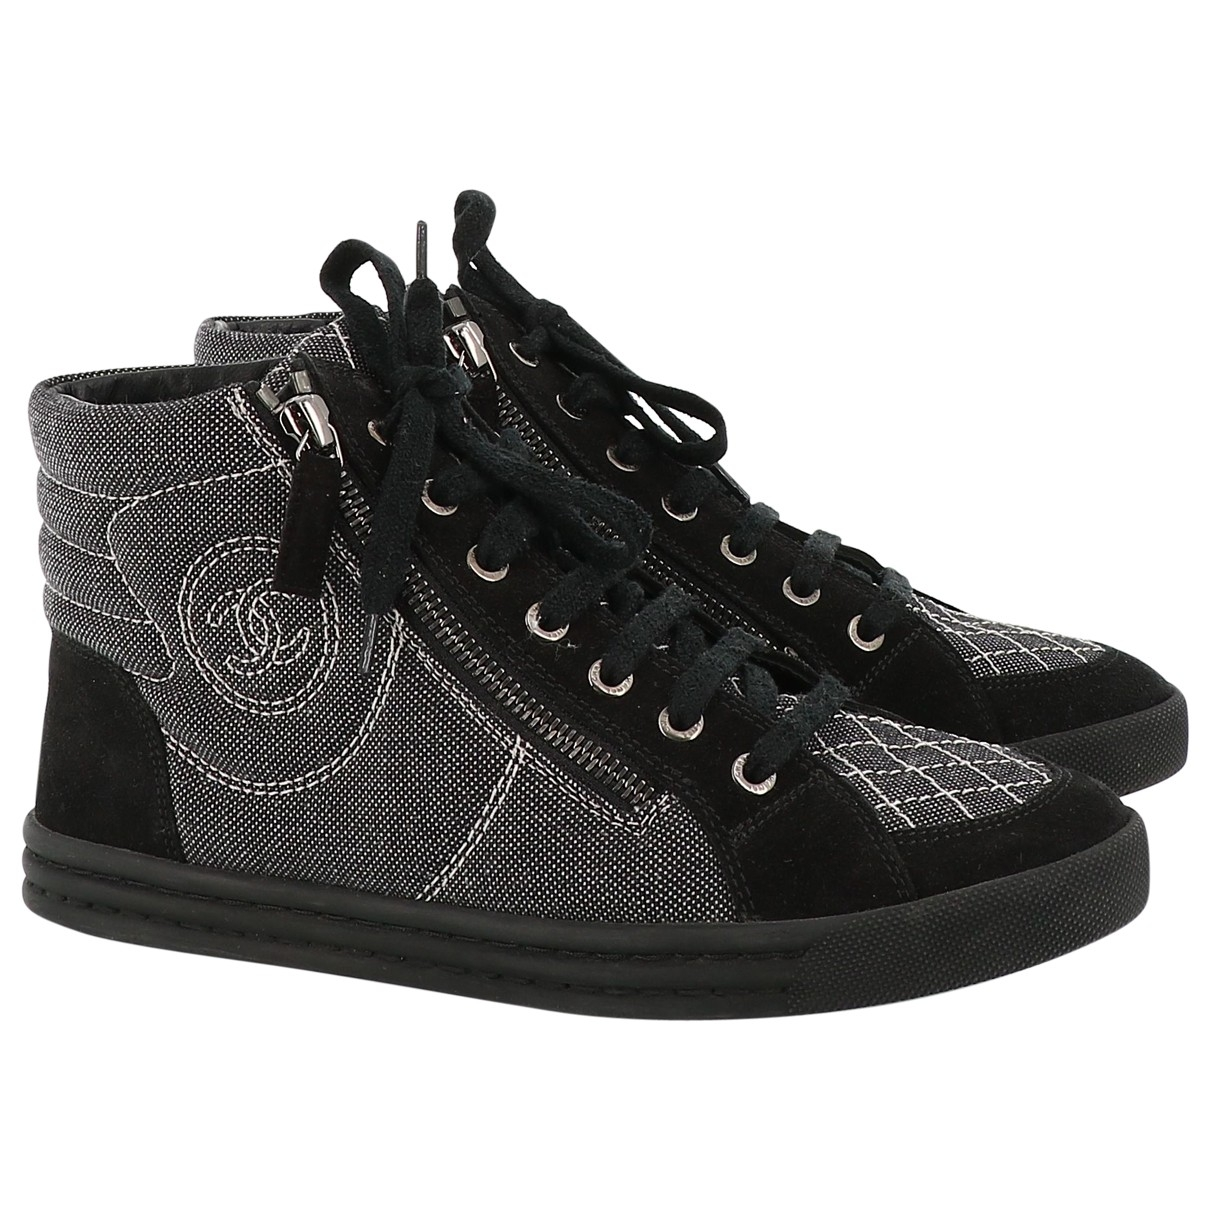 Chanel \N Black Suede Trainers for Women 37.5 EU